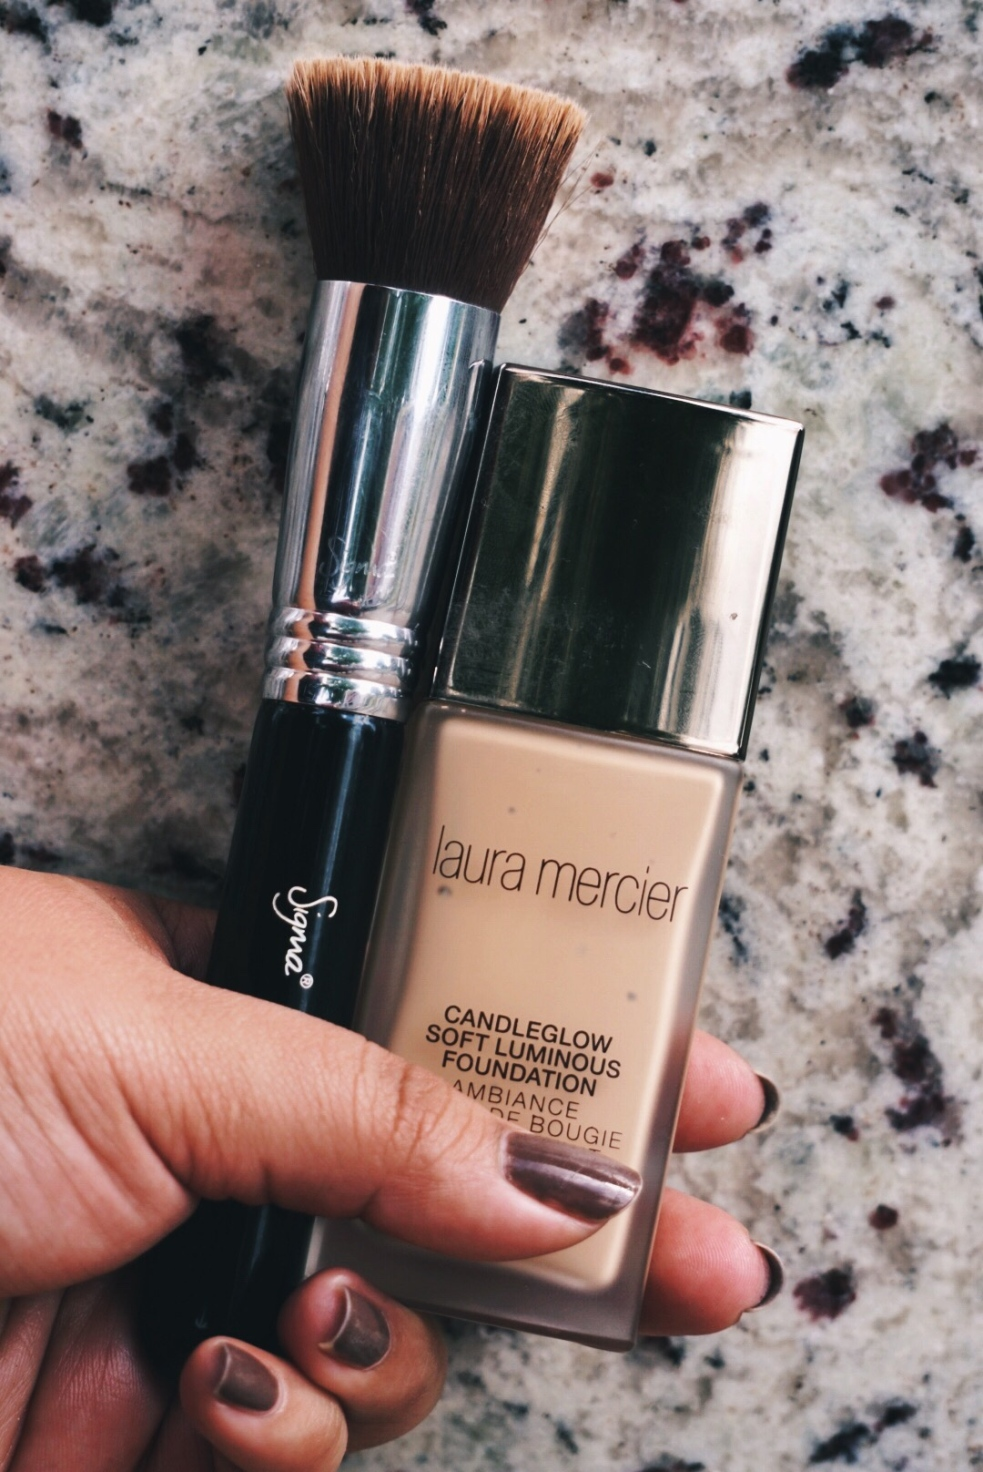 Laura Mercier Candleglow Soft Luminous Foundation Makeup Routine